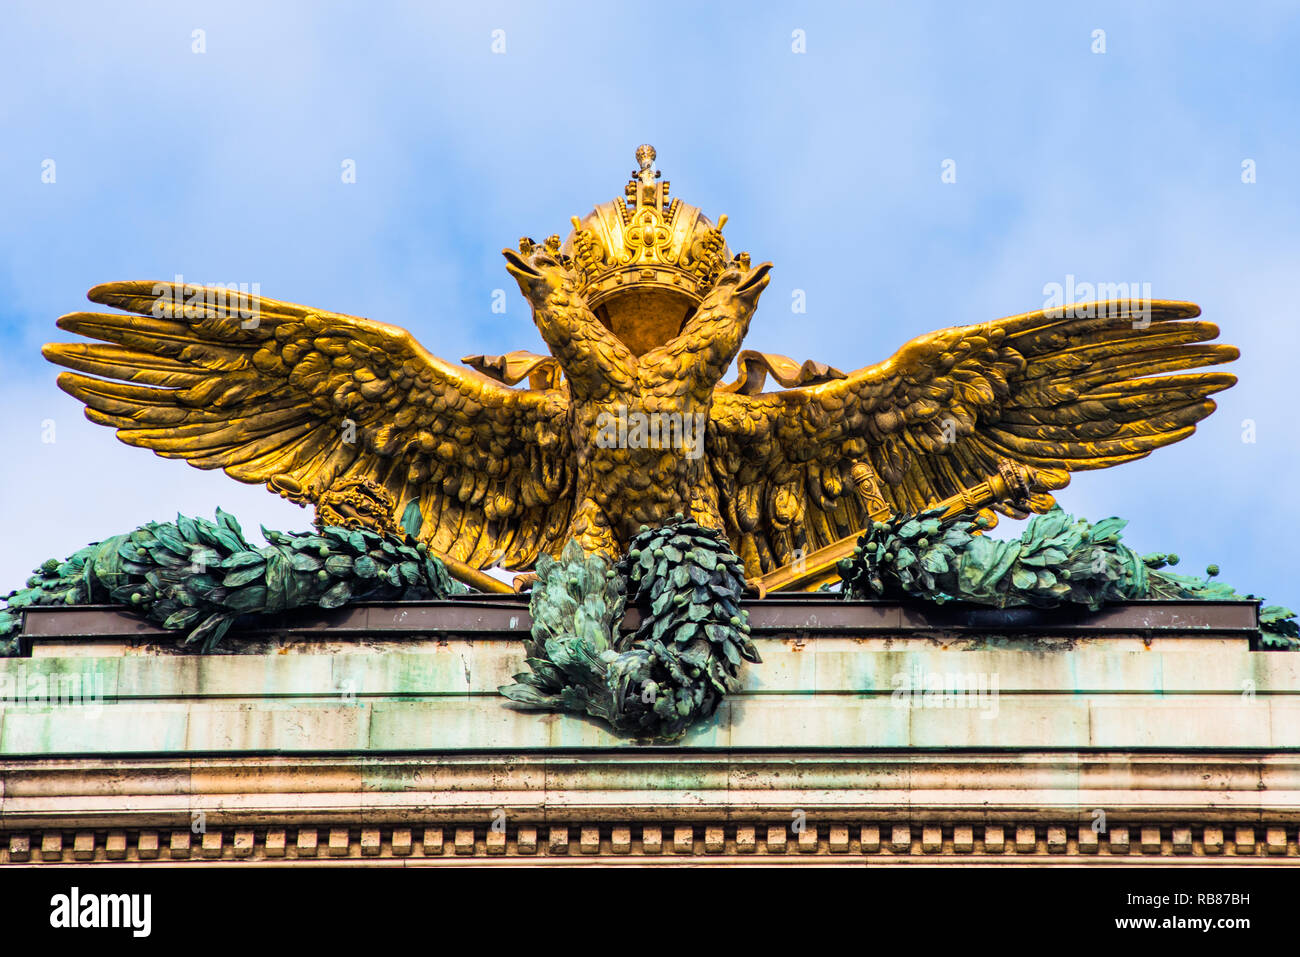 a9d3261ab Gold Imperial Two Headed Eagle And Royal Crown Of The Hofburg Palace In  Vienna, Austria